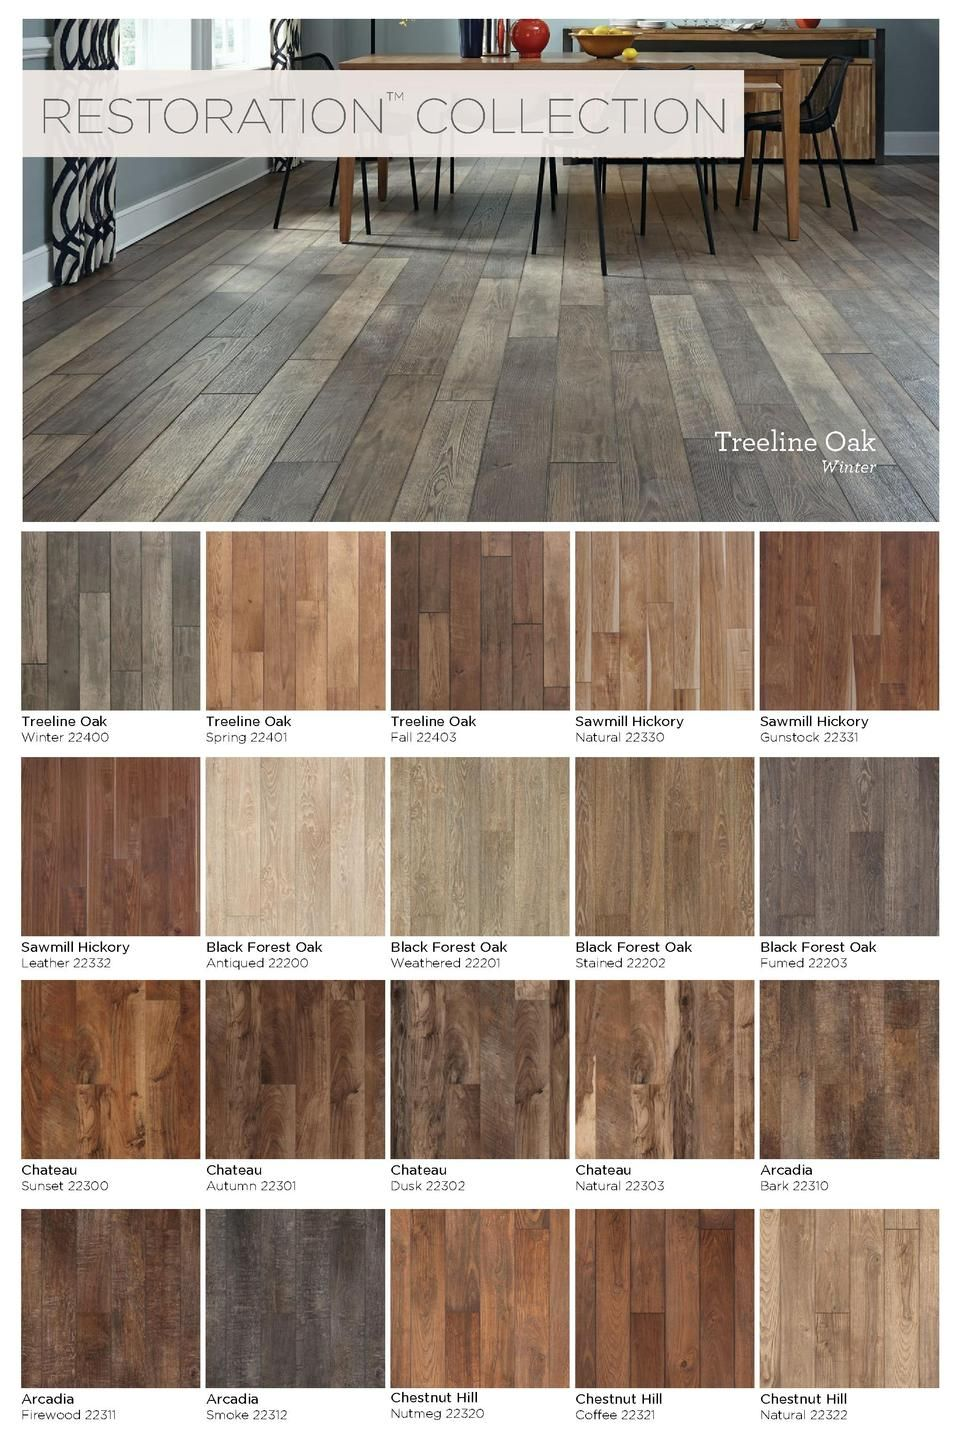 Mannington Offers Quality Laminate Flooring In Both Hardwood And